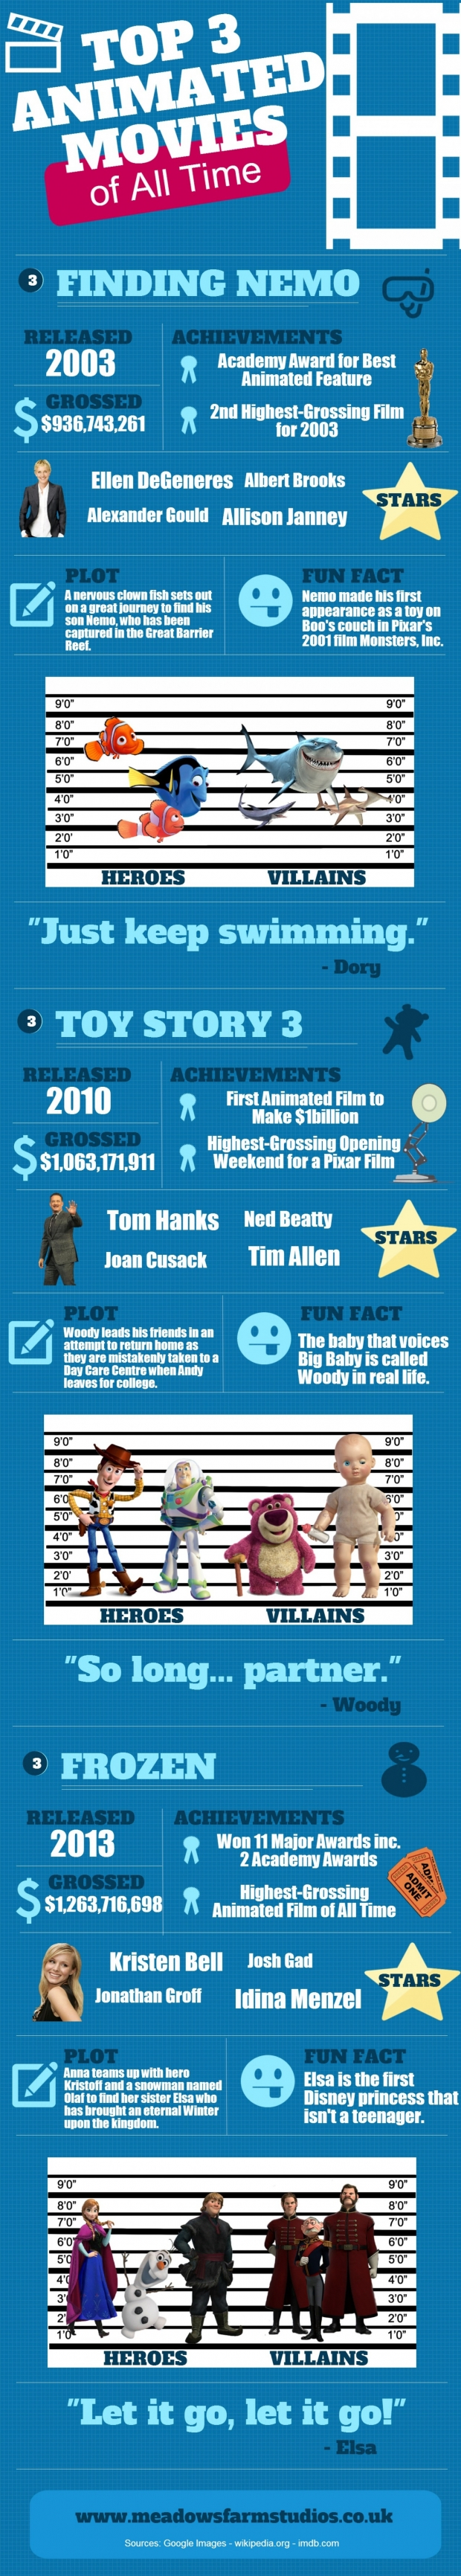 Top-3-Animated-Movies-of-All-Time